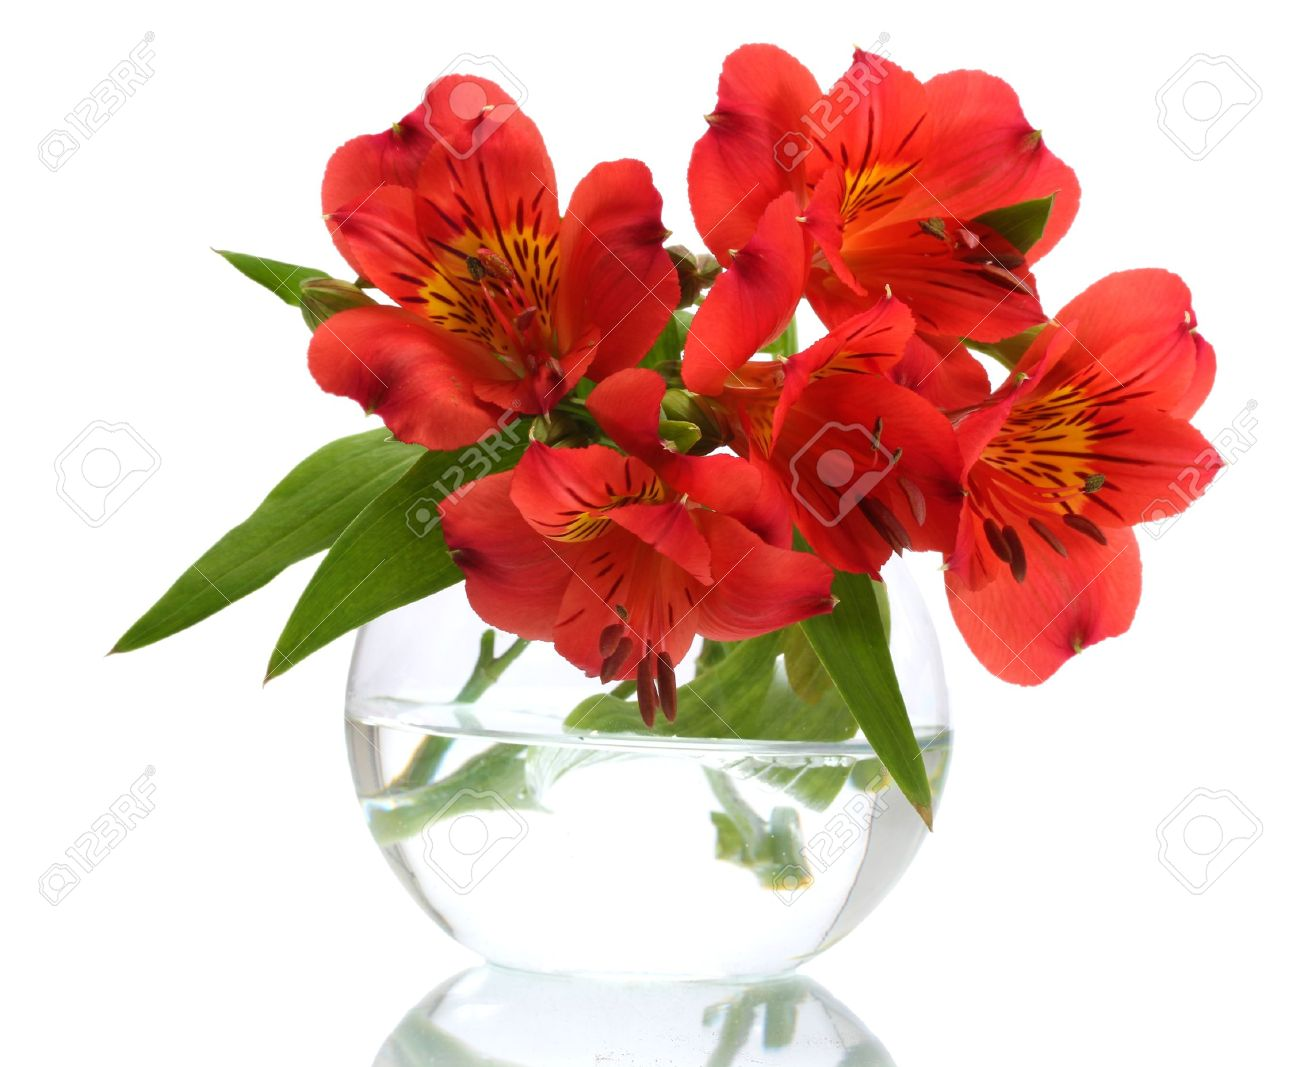 Flower vase stock photos royalty free business images alstroemeria red flowers in vase isolated on white reviewsmspy